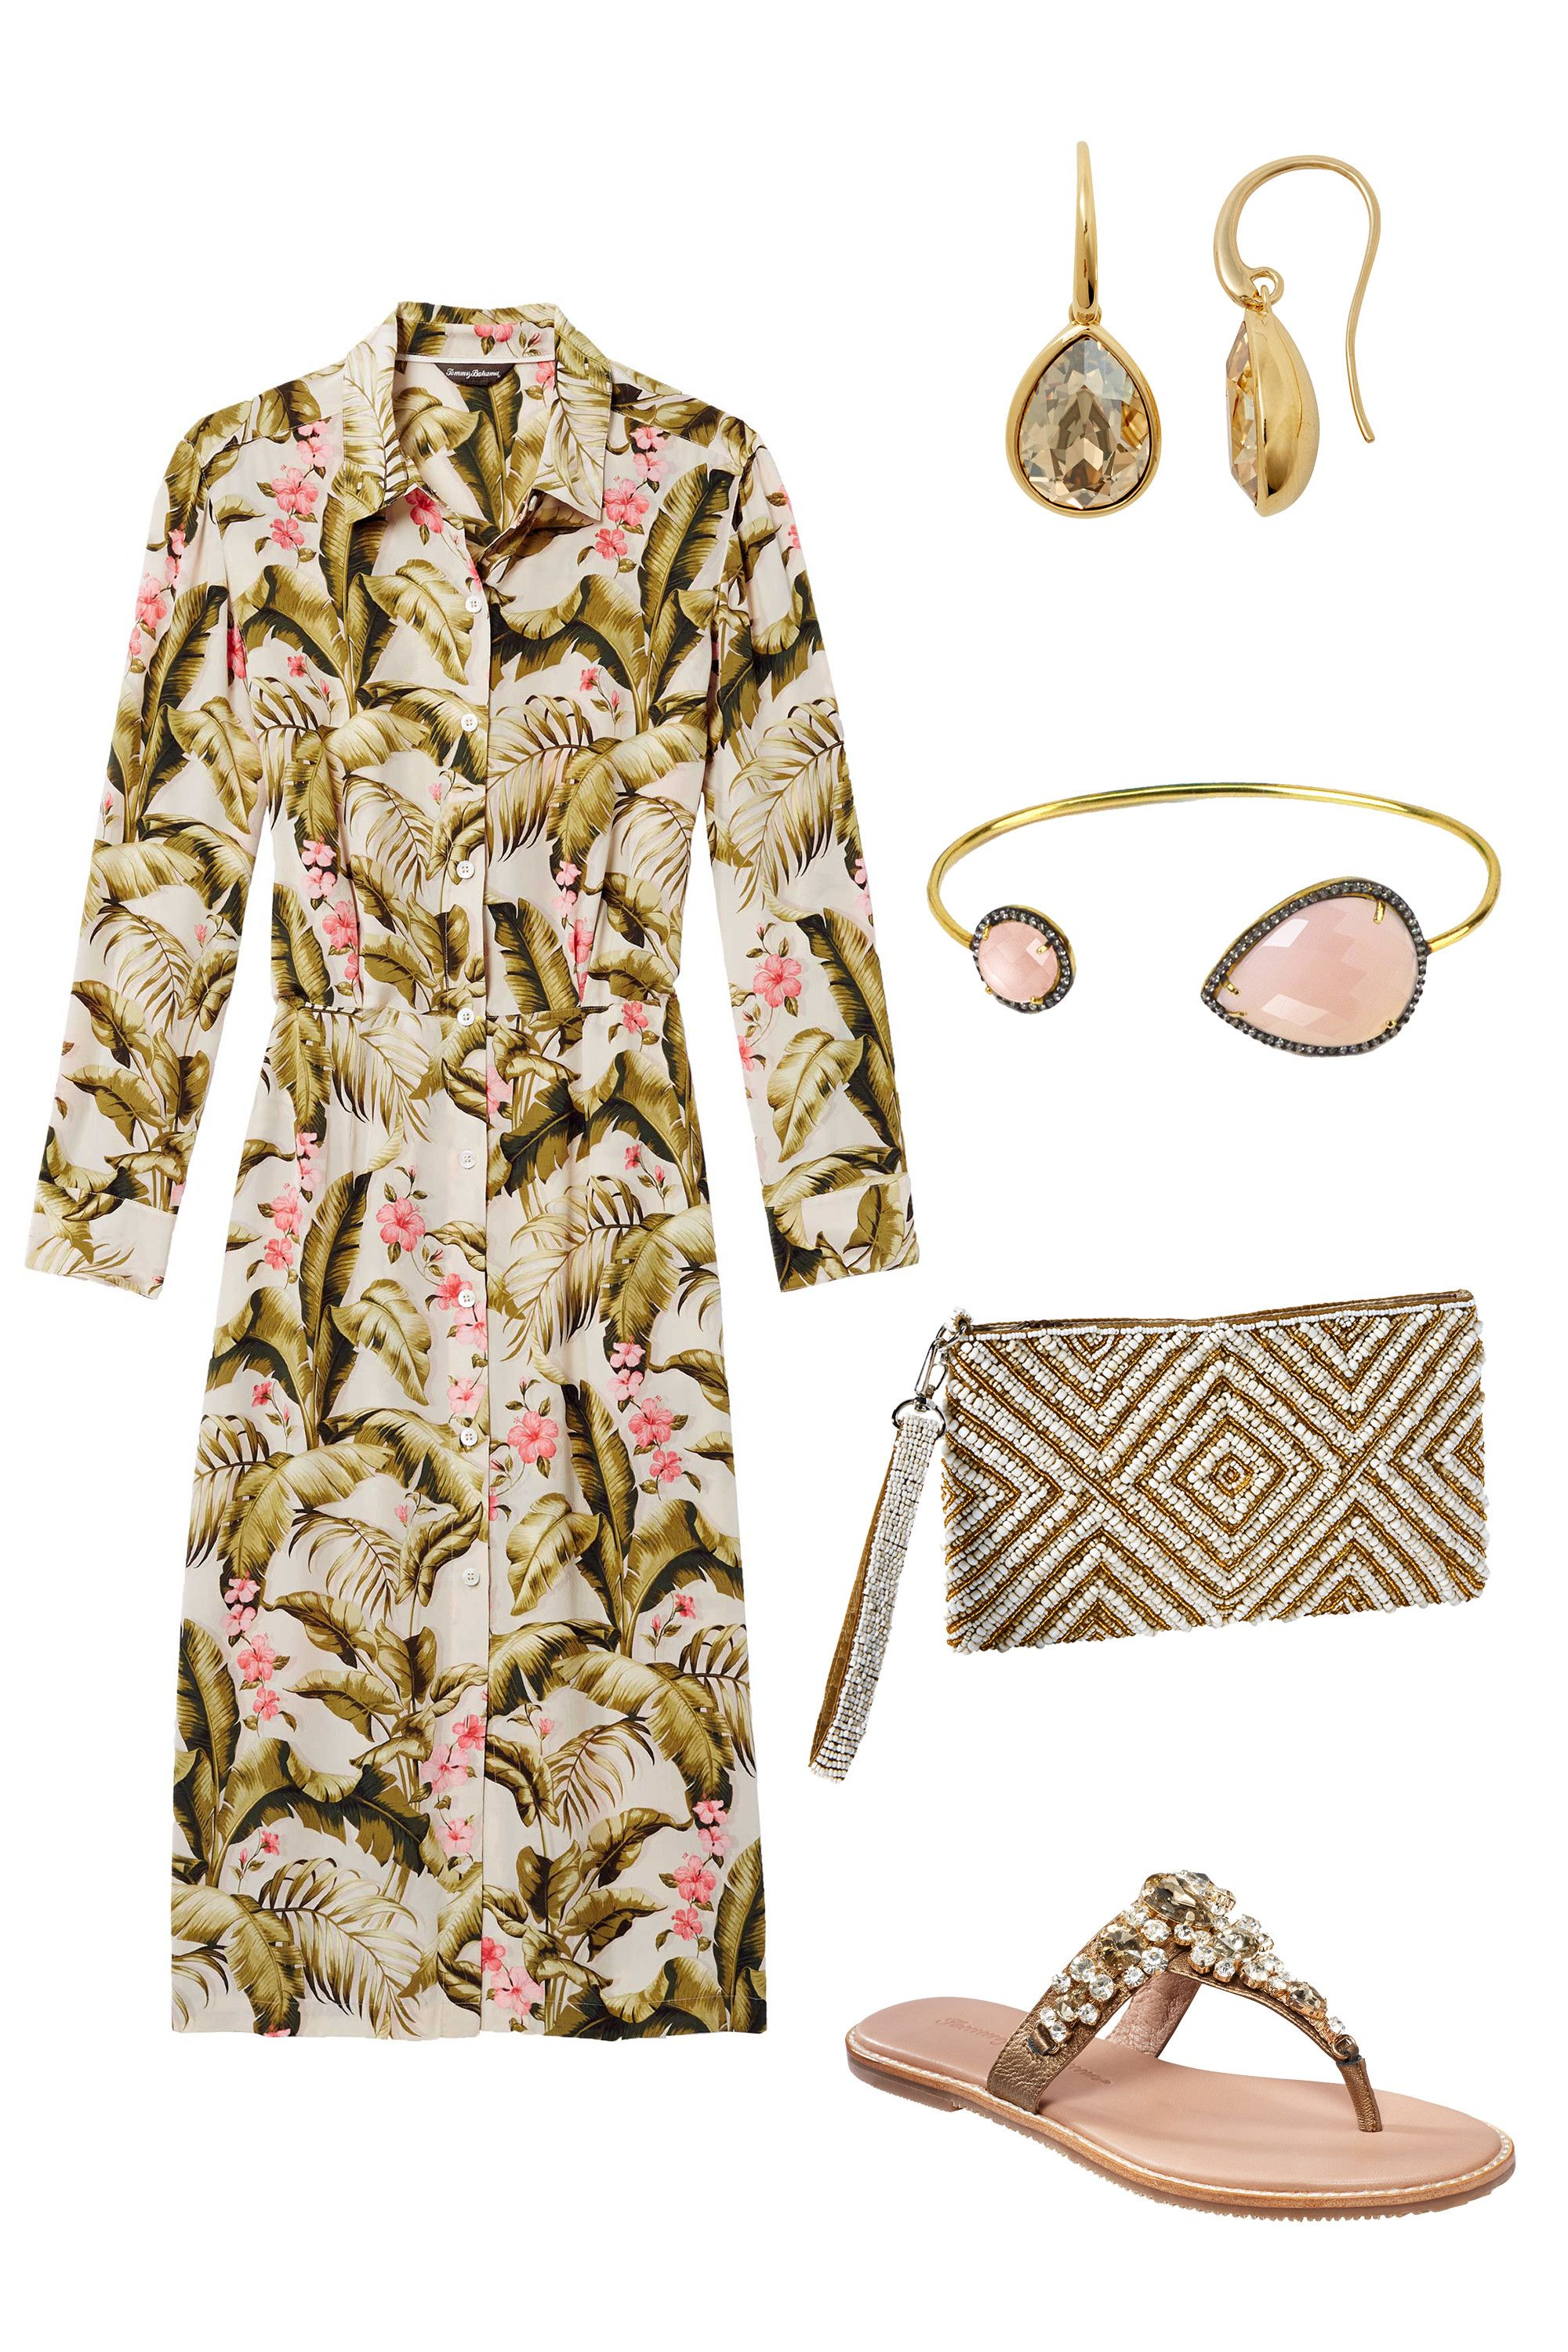 """<p>A floral shirtdress paired with chic thong sandals and delicate accessories ensures you'll celebrate the bride in style.<br> </p><p><br> </p><p><em><em>Tommy Bahama Beau Jardin Silk Shirt Dress, <a href=""""http://www.tommybahama.com/en/Beau-Jardin-Silk-Shirt-Dress/p/TW613255-4015"""" target=""""_blank"""">$298</a>; Gold Teardrop Earrings, <a href=""""http://www.tommybahama.com/en/Gold-Teardrop-Earrings/p/THW74566-11346"""" target=""""_blank"""">$48</a>; Pink Chalcedony Double-Stone Cuff, <a href=""""http://www.tommybahama.com/en/Pink-Chalcedony-Double-Stone-Cuff/p/THW74638-4987"""" target=""""_blank"""">$158</a>; Beaded Diamond Wristlet, <a href=""""http://www.tommybahama.com/en/Beaded-Diamond-Wristlet/p/THW74492-185"""" target=""""_blank"""">$68</a>; <em><em>Yuri Leather Sandals, <a href=""""http://www.tommybahama.com/en/Yuri-Leather-Sandals/p/TFW00209-617"""" target=""""_blank"""">$138</a></em></em></em></em></p>"""